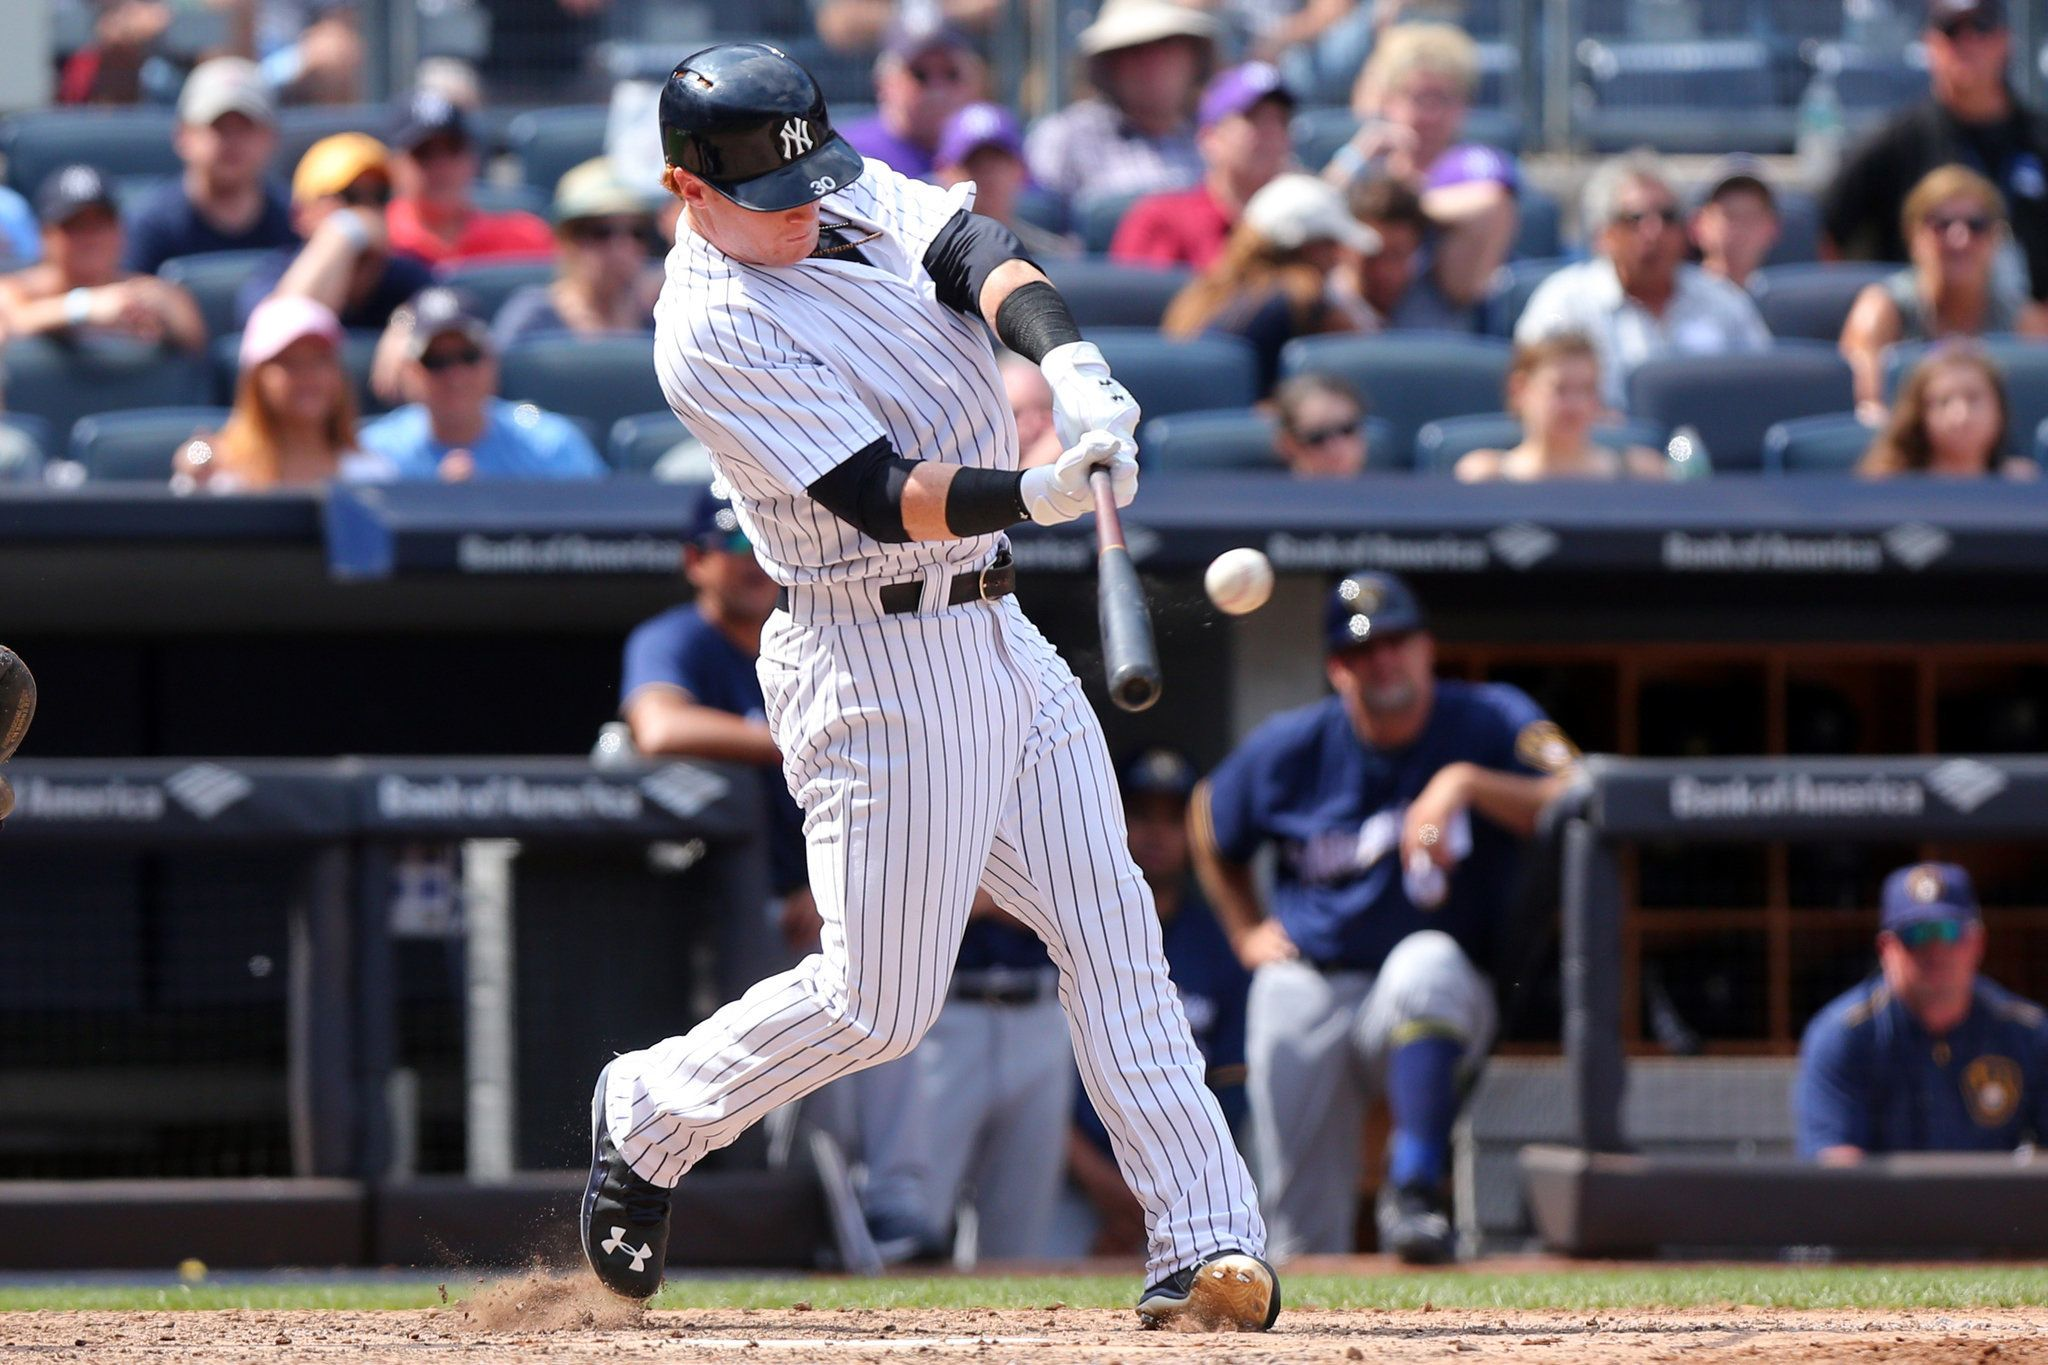 How Frazier Changed His Swing Before Walk Off Clint Frazier New York Yankees Baby Bomber